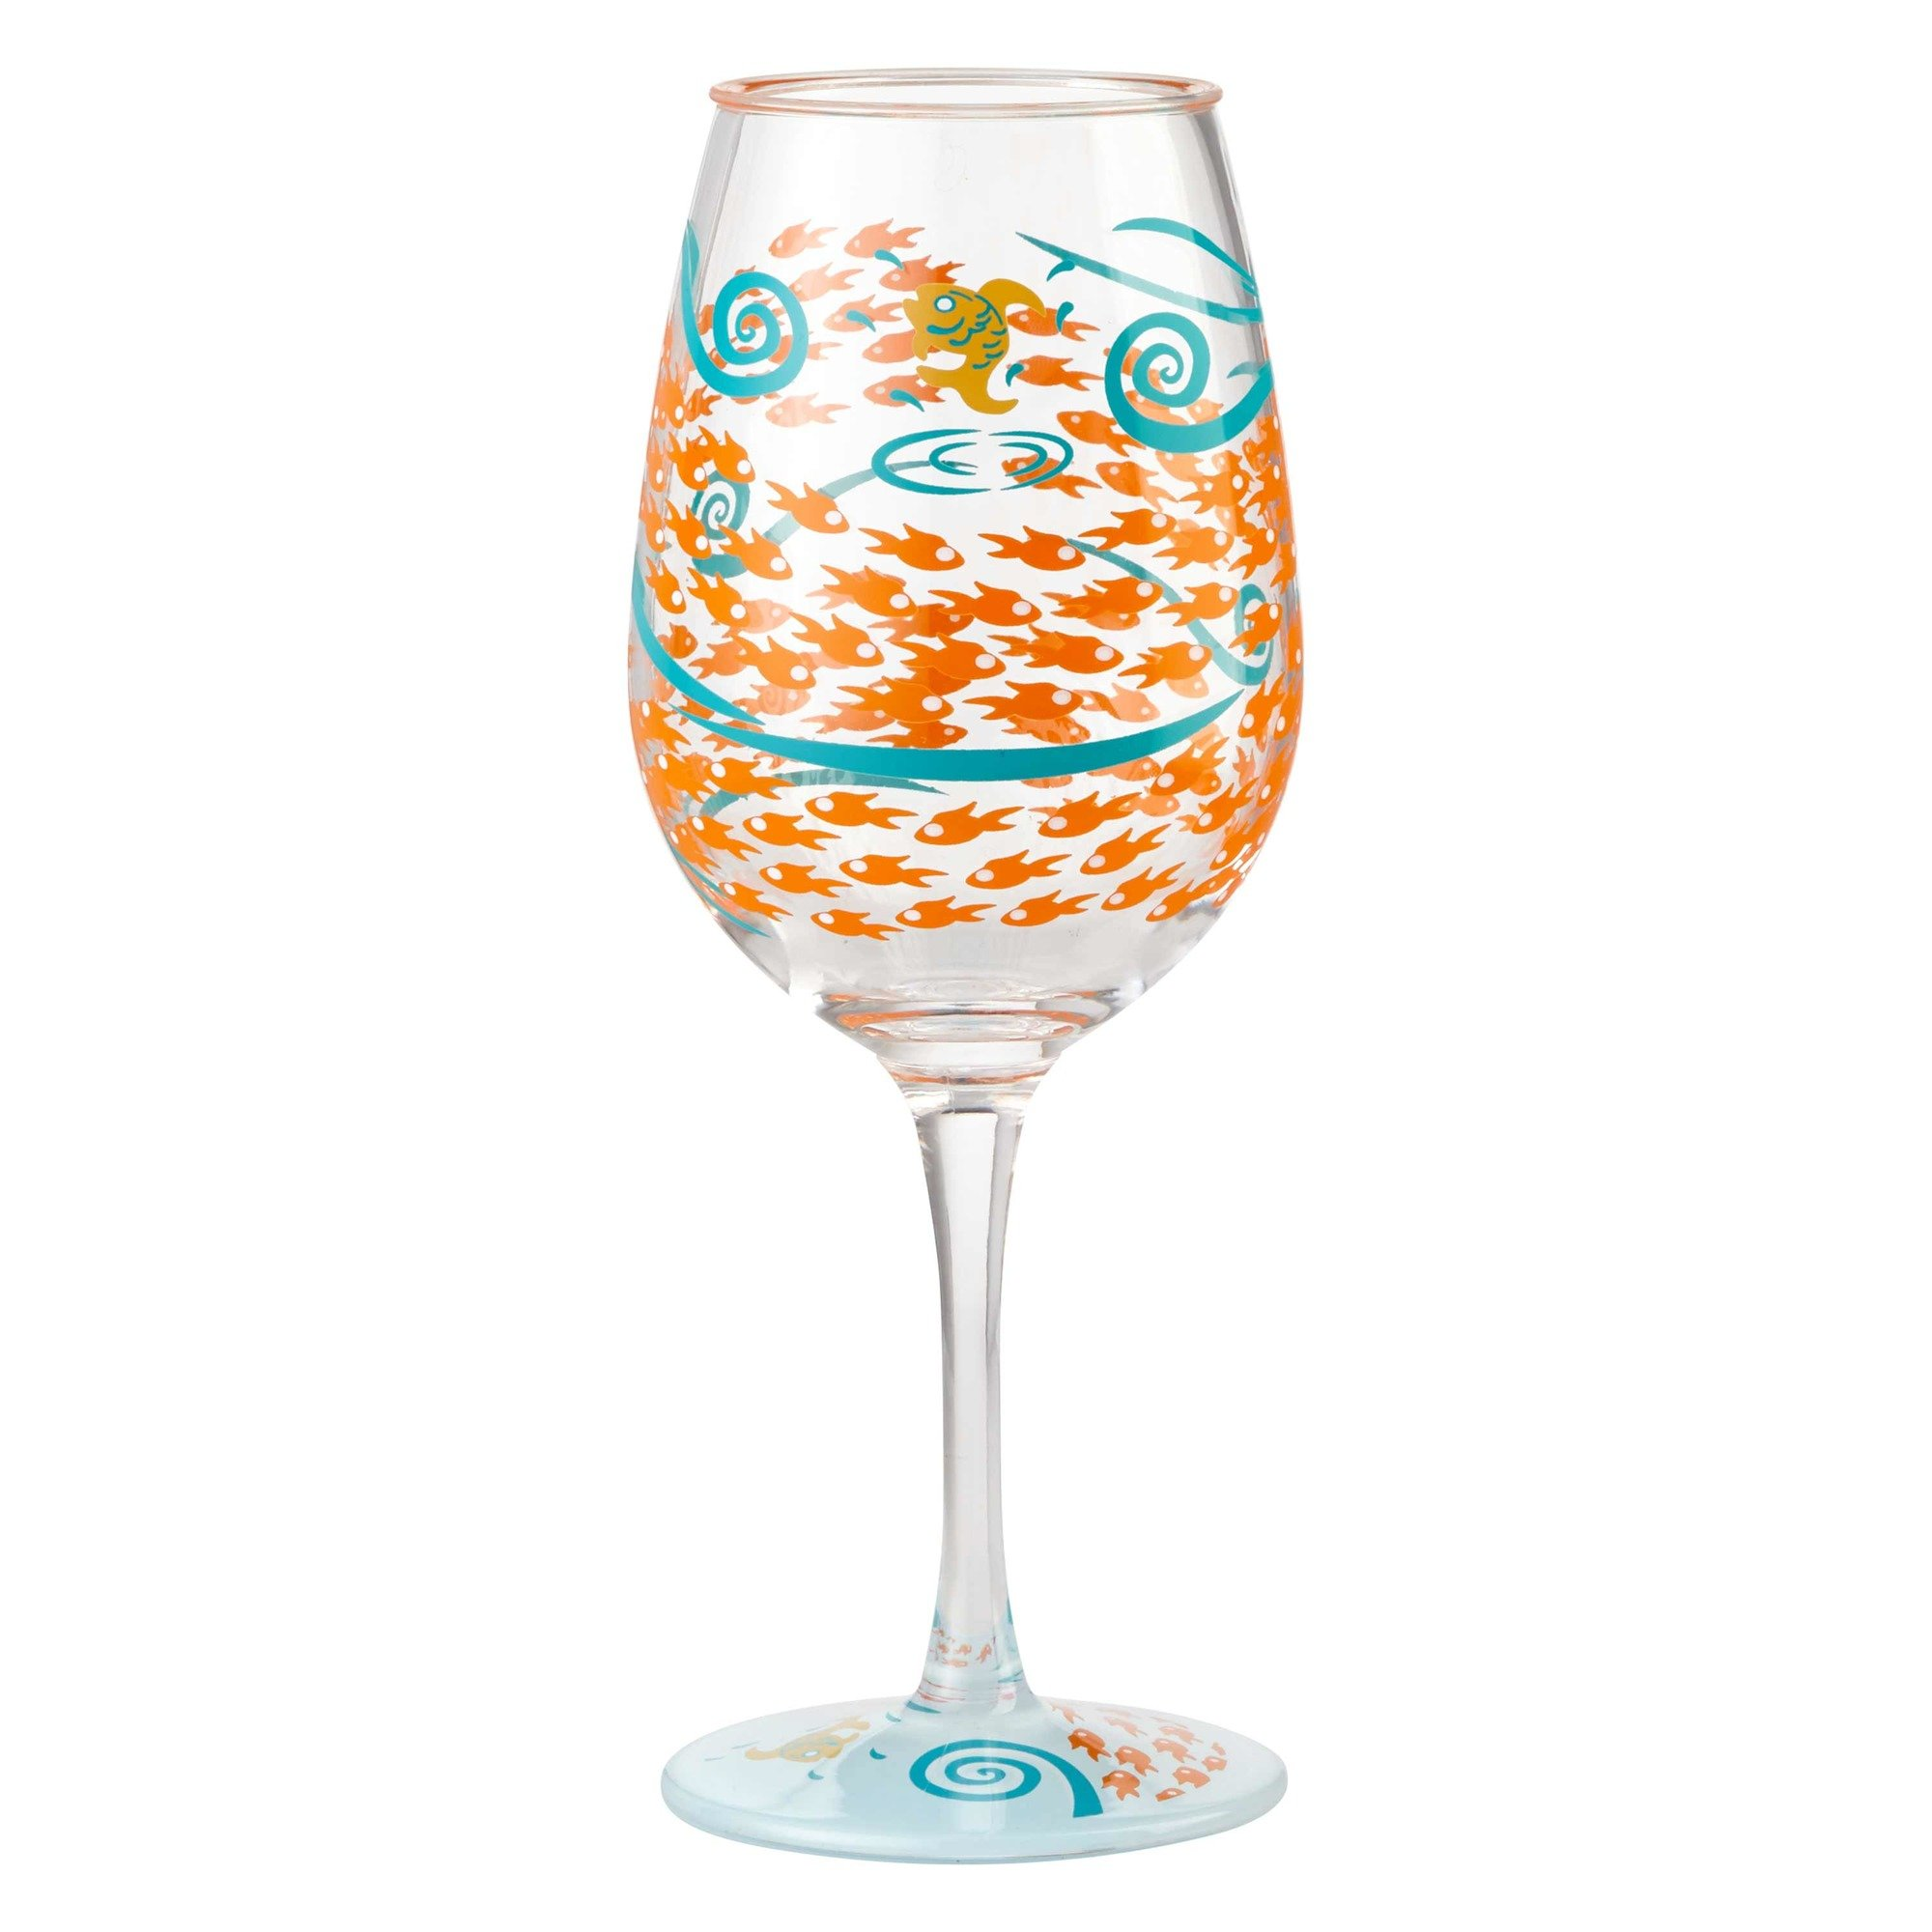 Enesco Designs by Lolita Fish Out of Water Acrylic Wine Glasses, Set of 2, 16 oz.